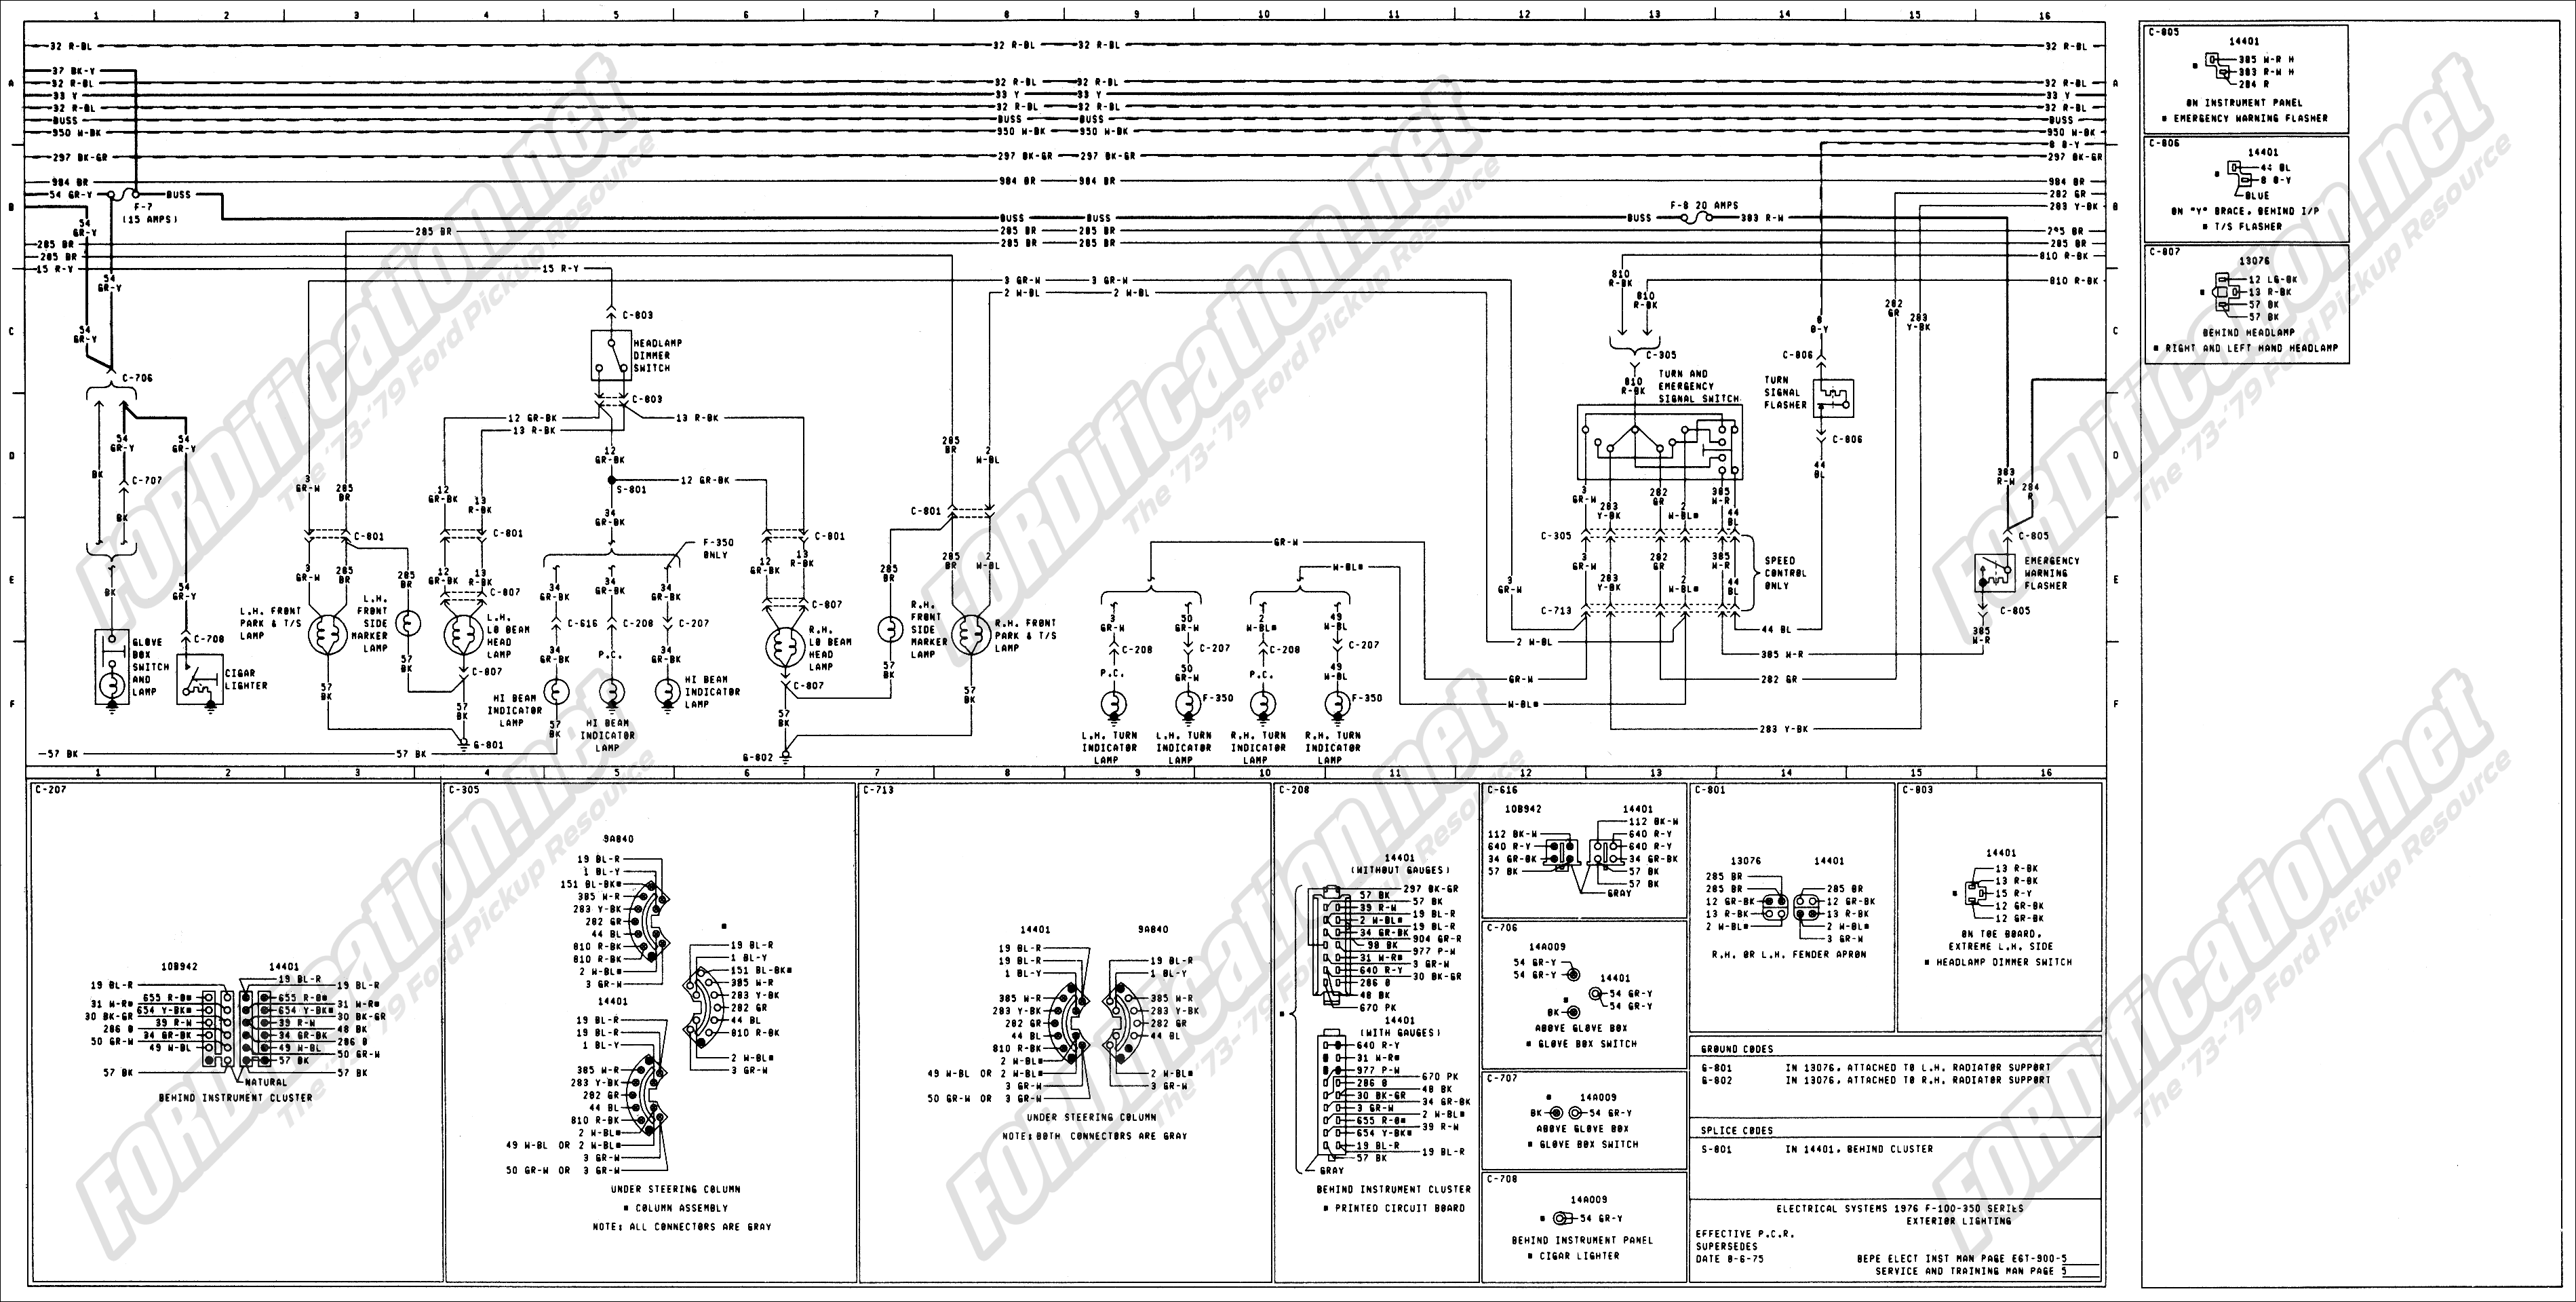 2002 Blazer Trailer Wiring Diagram - Schematics Online on